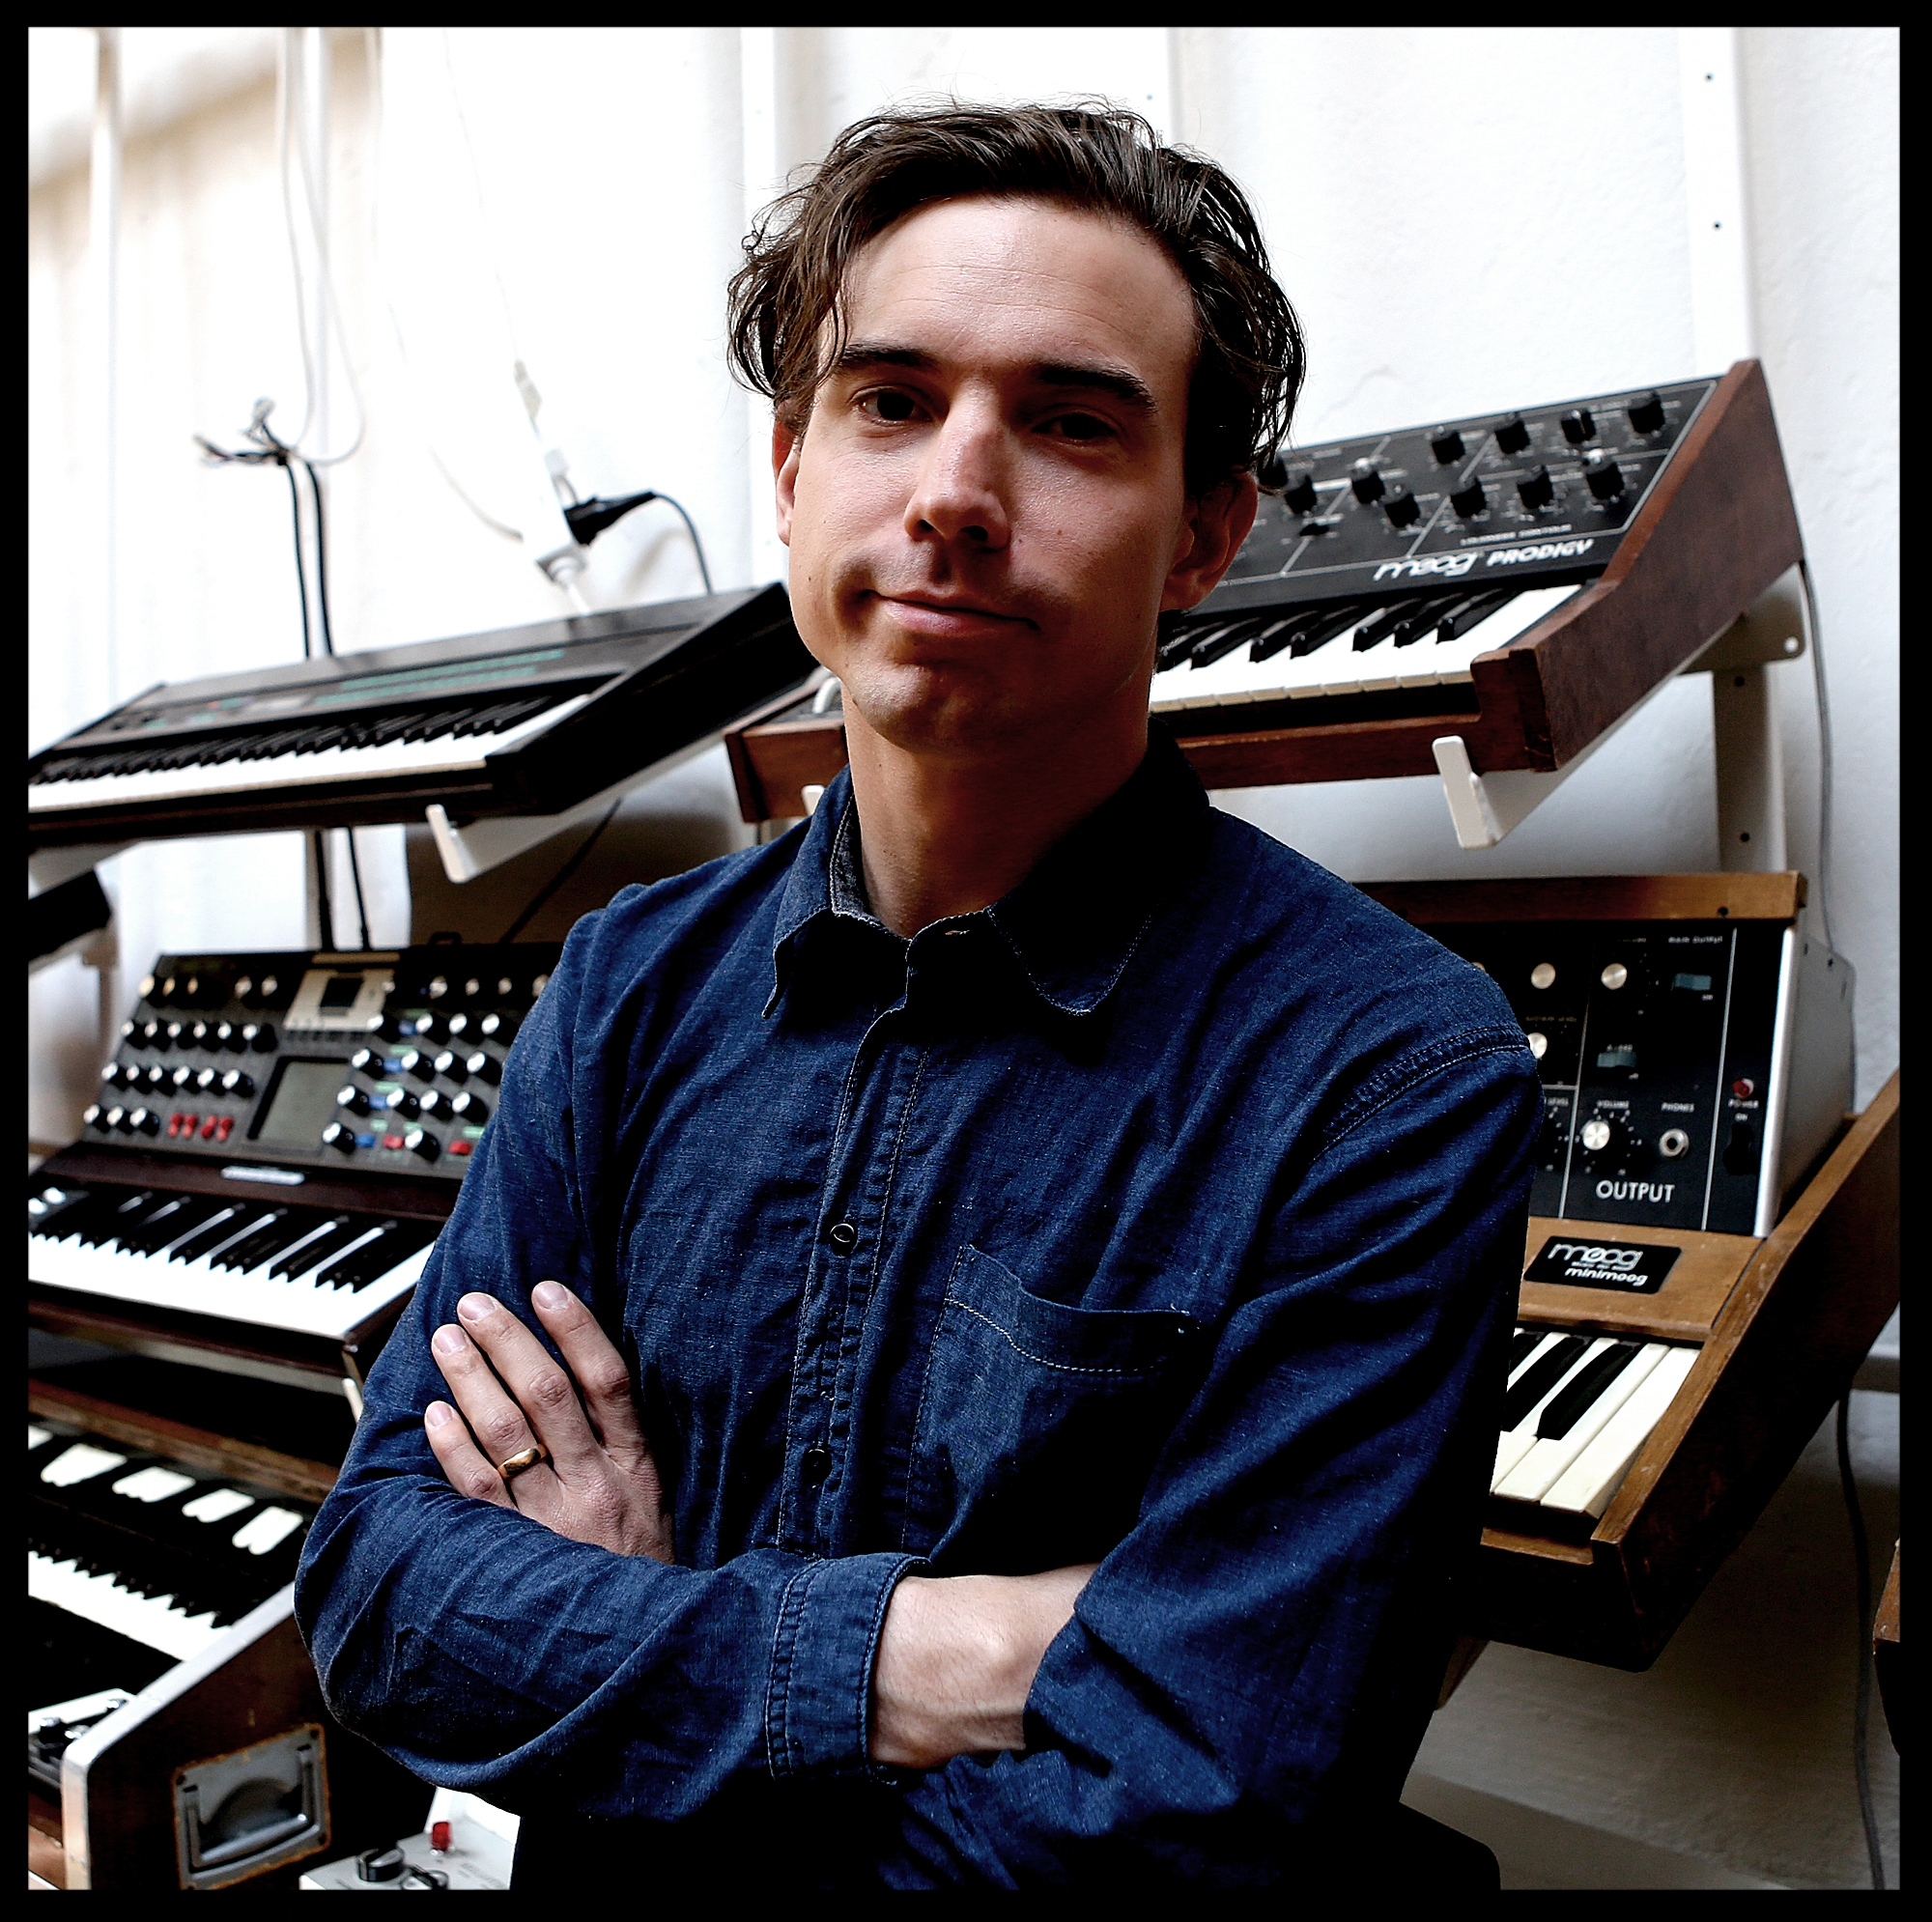 Swedish electronic music producer  Christoffer Berg  remixed Psyche for its Flash Treatment mix, which was released on the Splitting The Atom EP in October 2009.